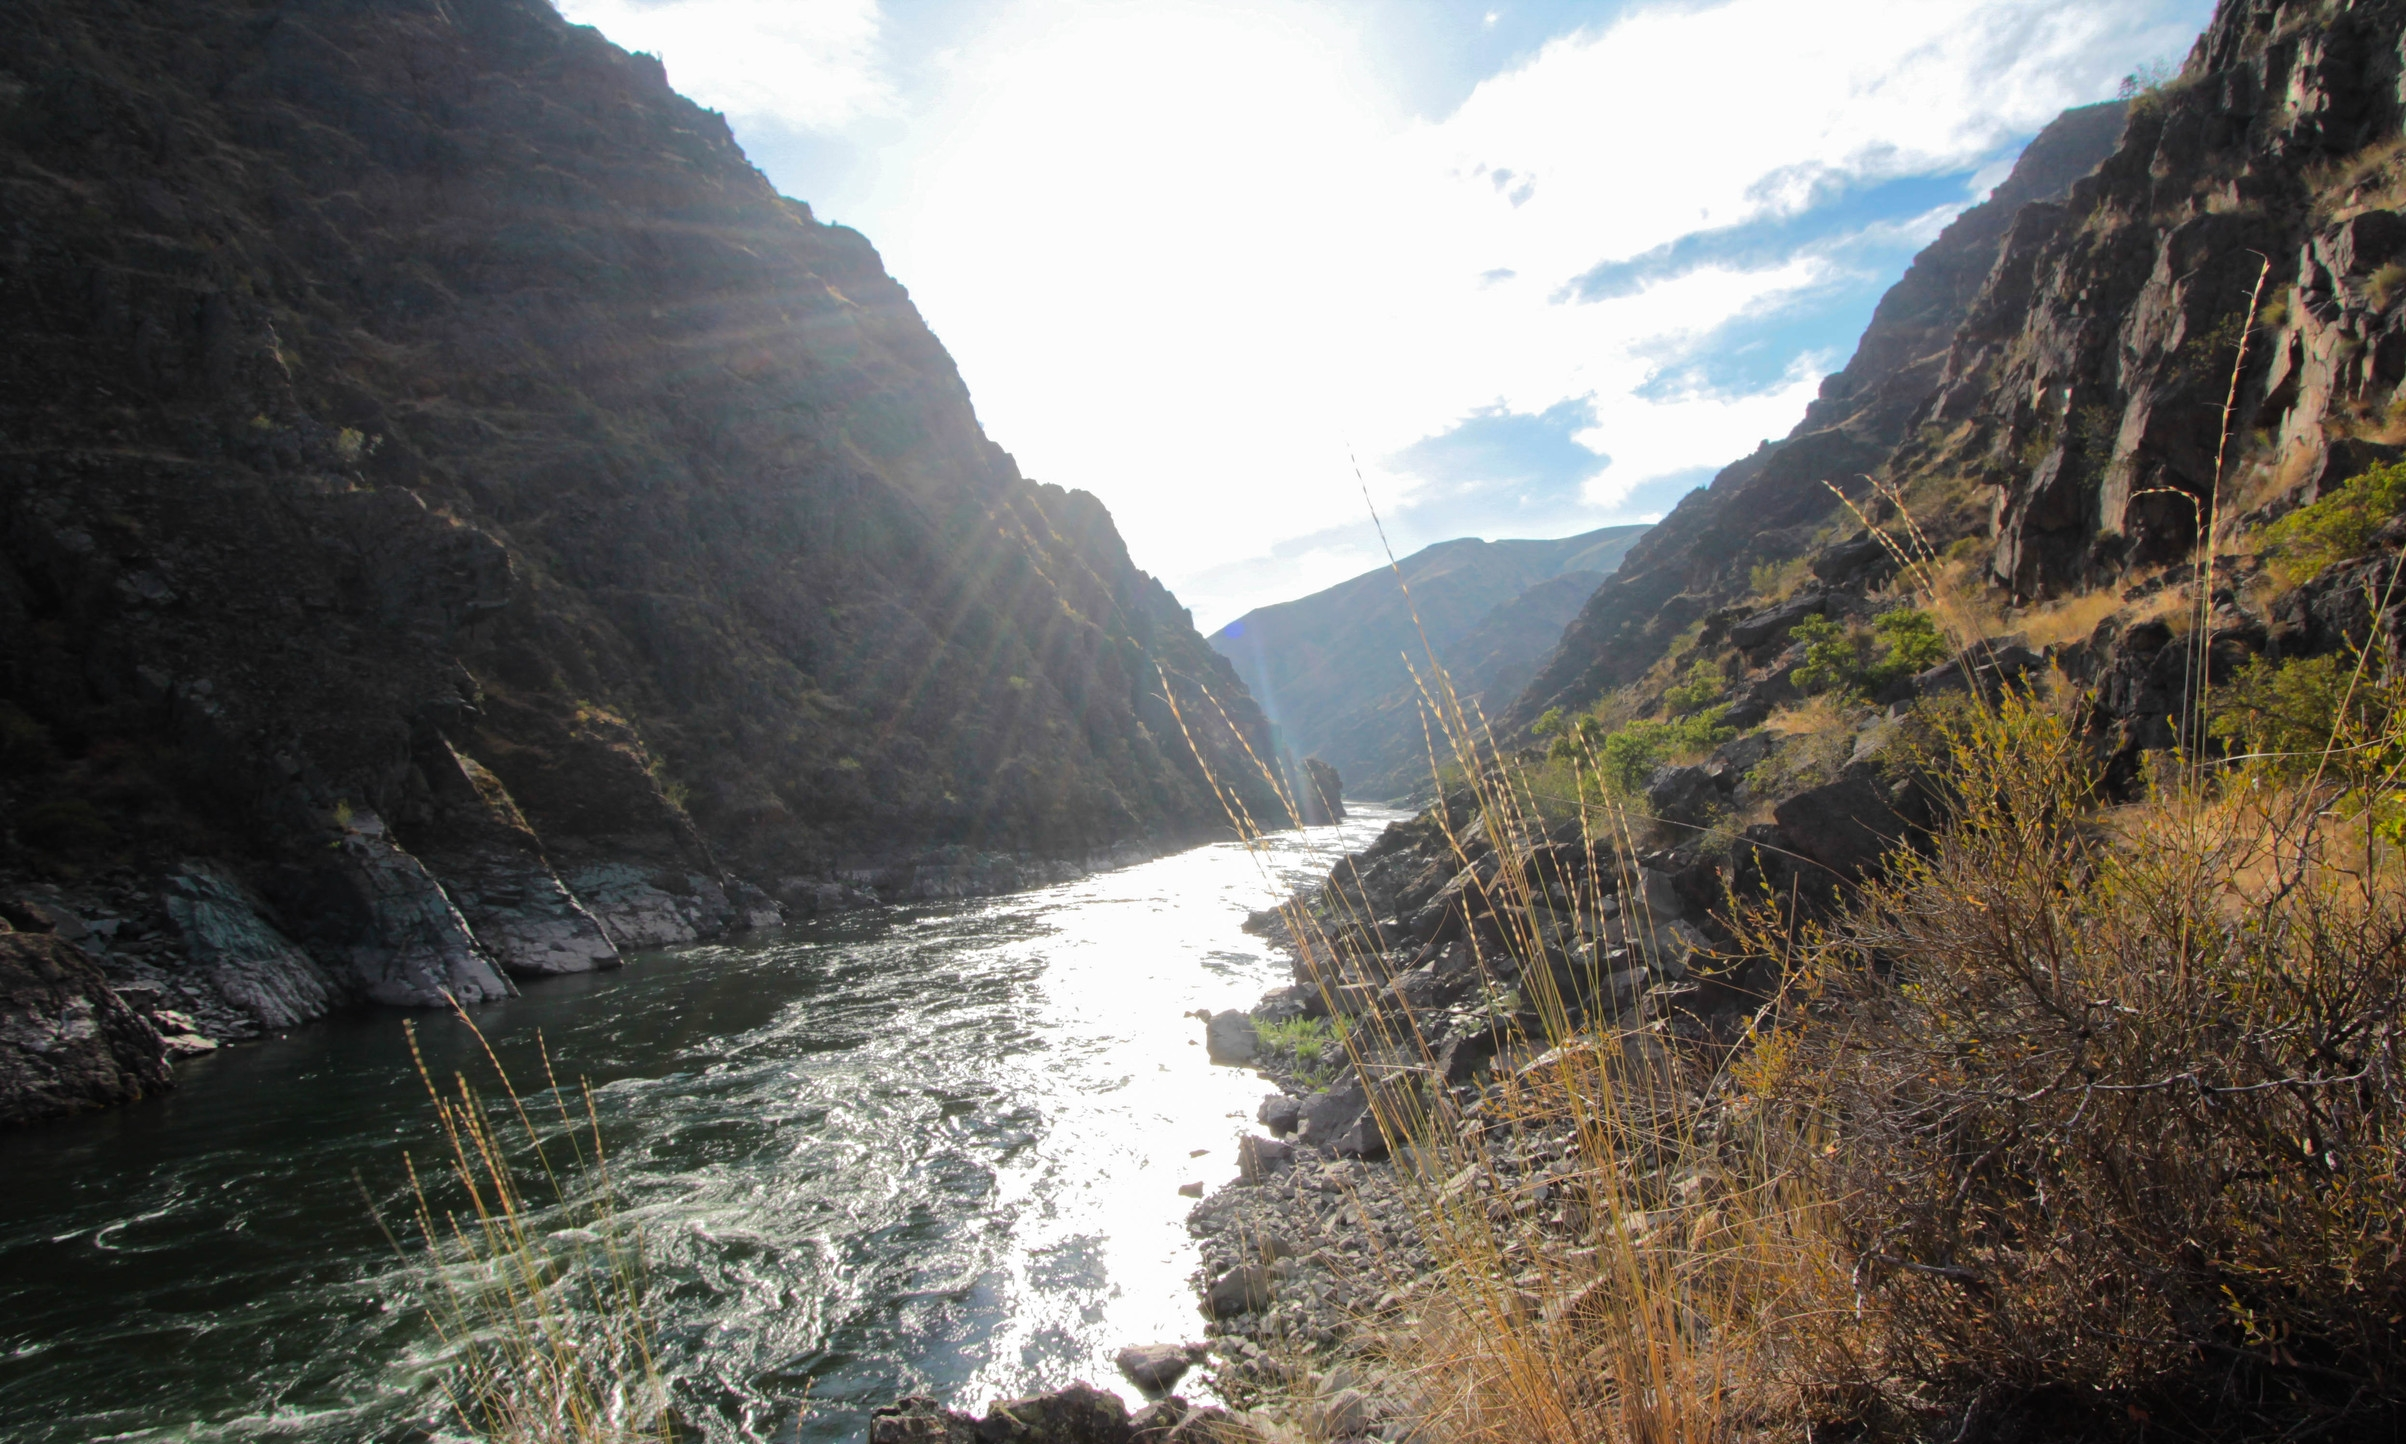 LOWER SALMON RIVER, ID